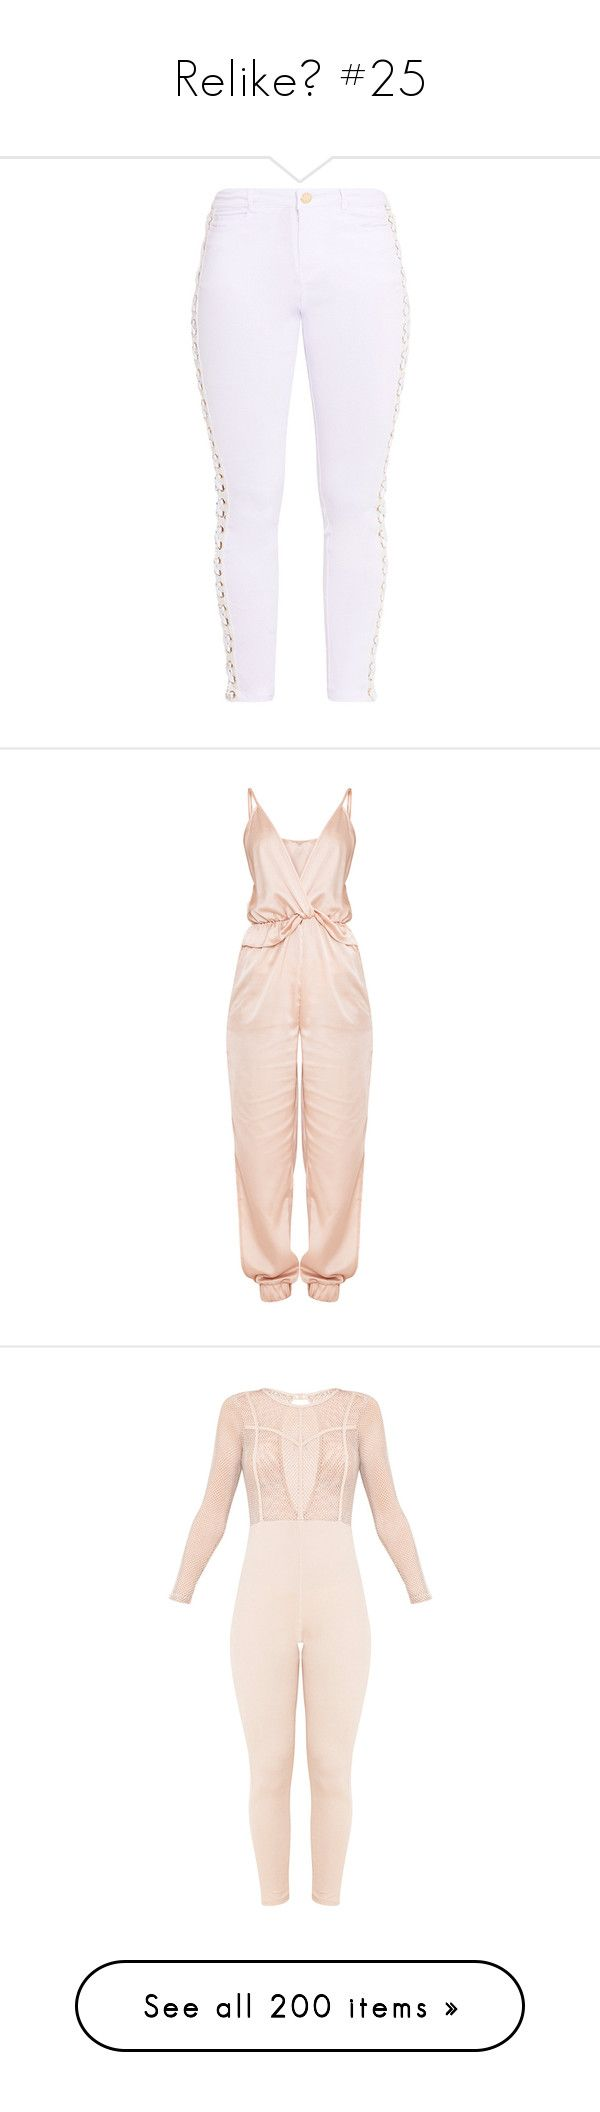 """""""Relike💕 #25"""" by moon-crystal-wolf ❤ liked on Polyvore featuring pants, white trousers, stretchy pants, white pants, stretch pants, white stretchy pants, jumpsuits, playsuits, dresses and jumpsuits/rompers"""